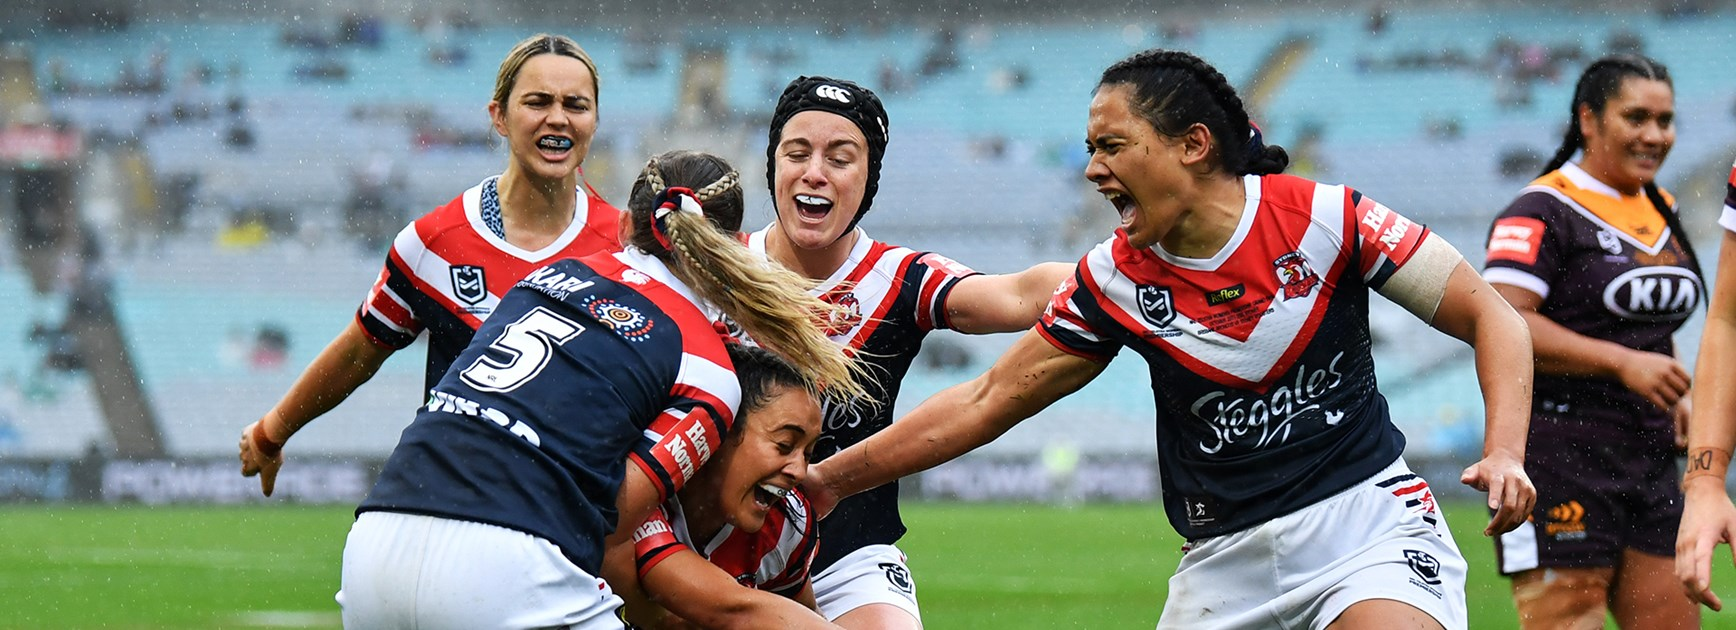 Stat Attack: NRLW records its highest quality season